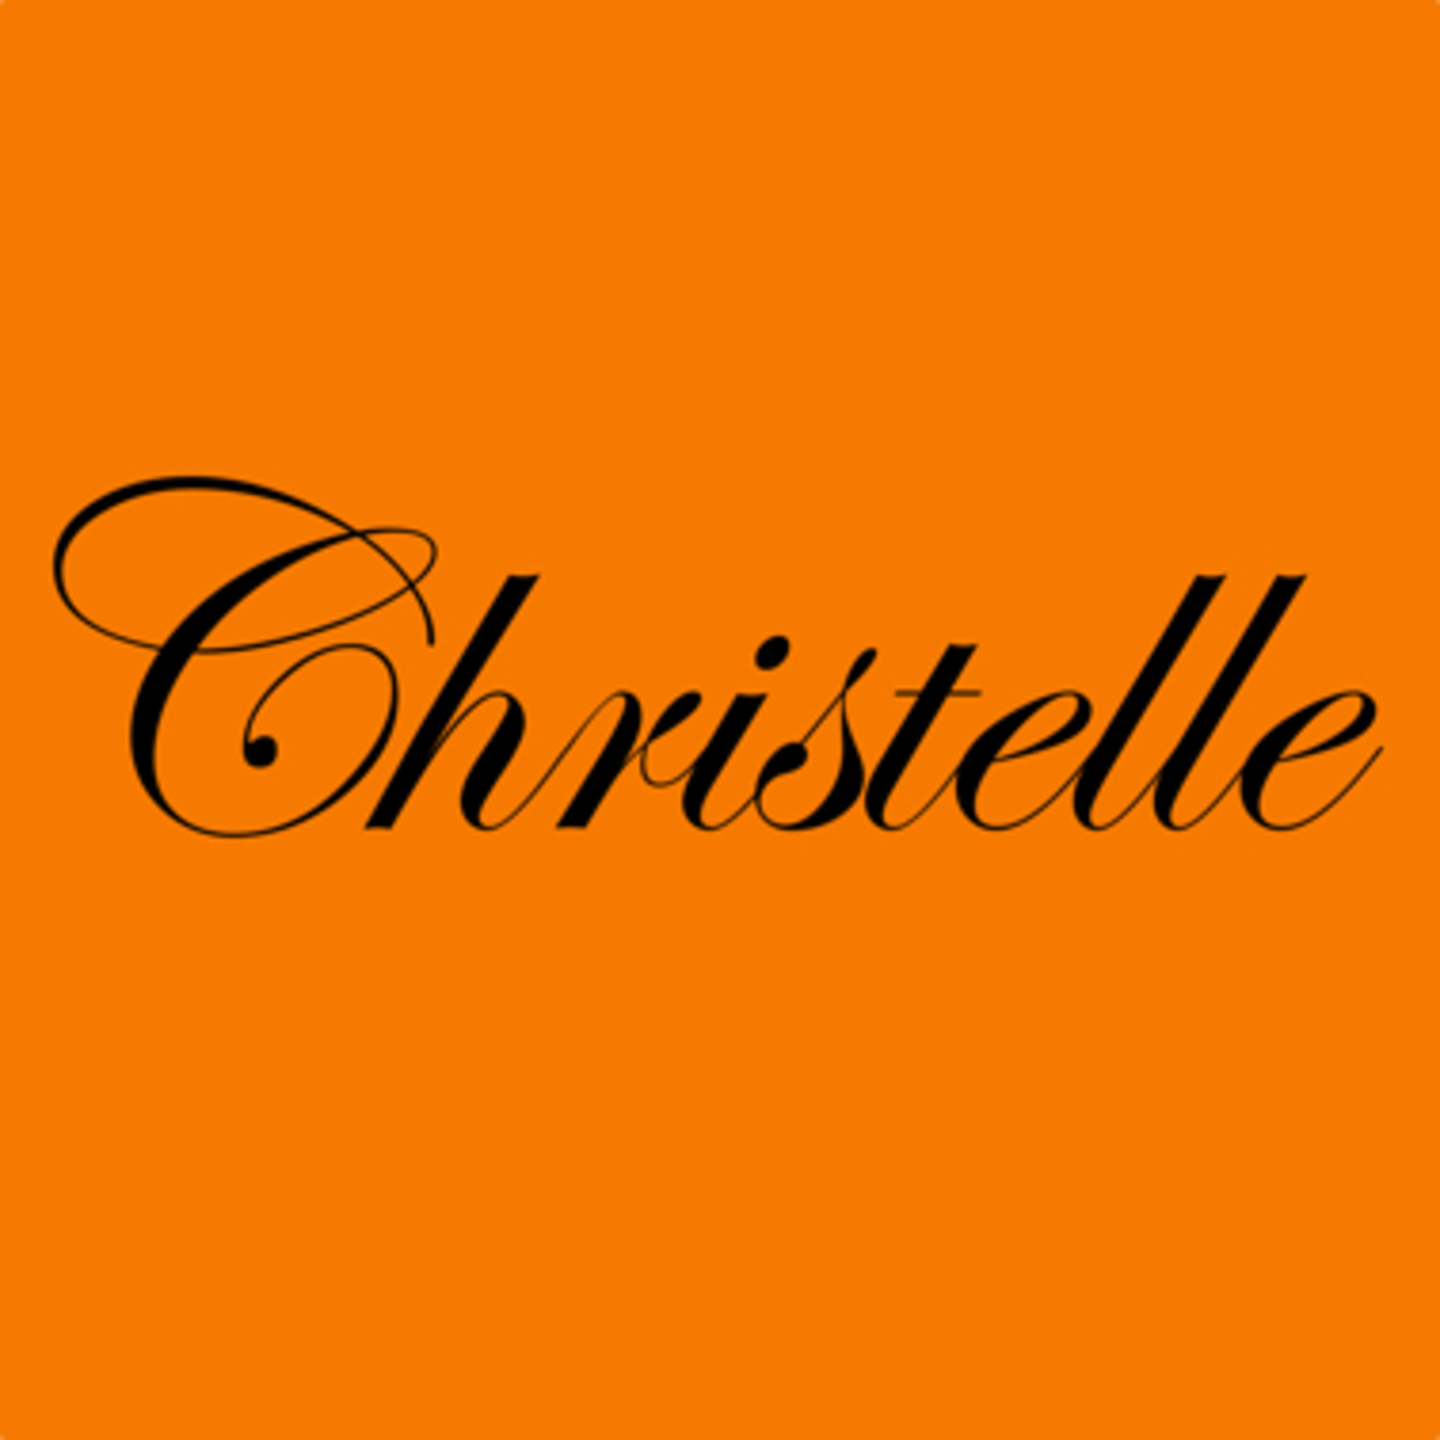 Christelle Limited